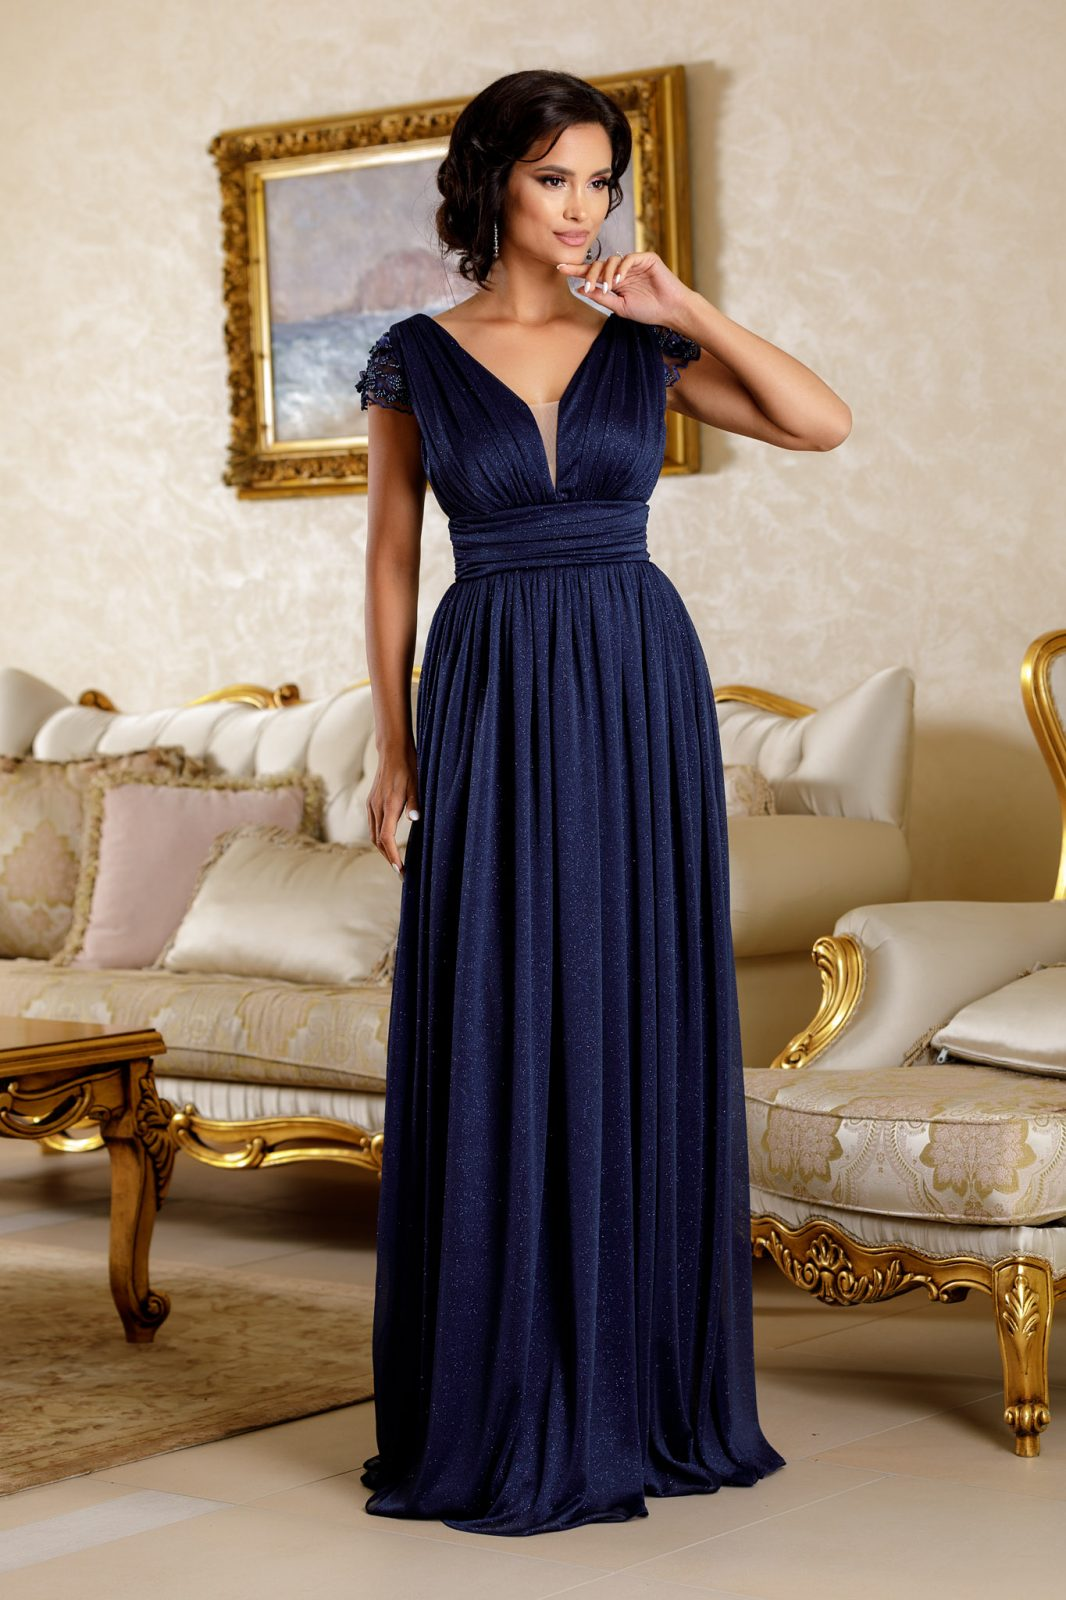 La Donna Beauty Navy Blue Dress